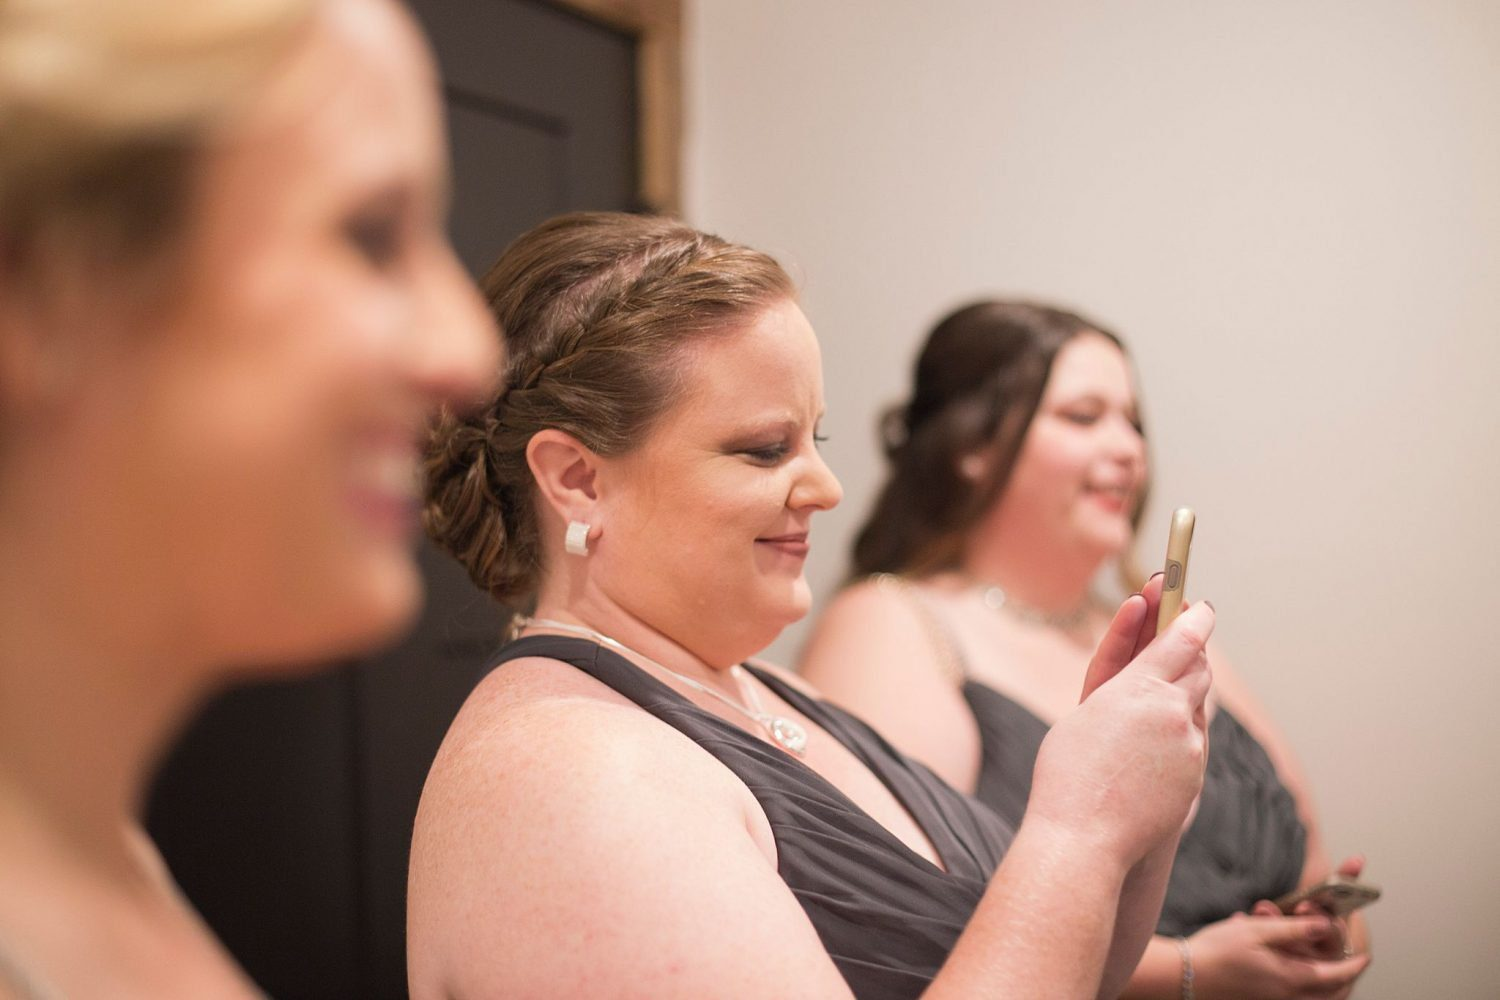 The bride's sister smiling as she watches the bride get ready.